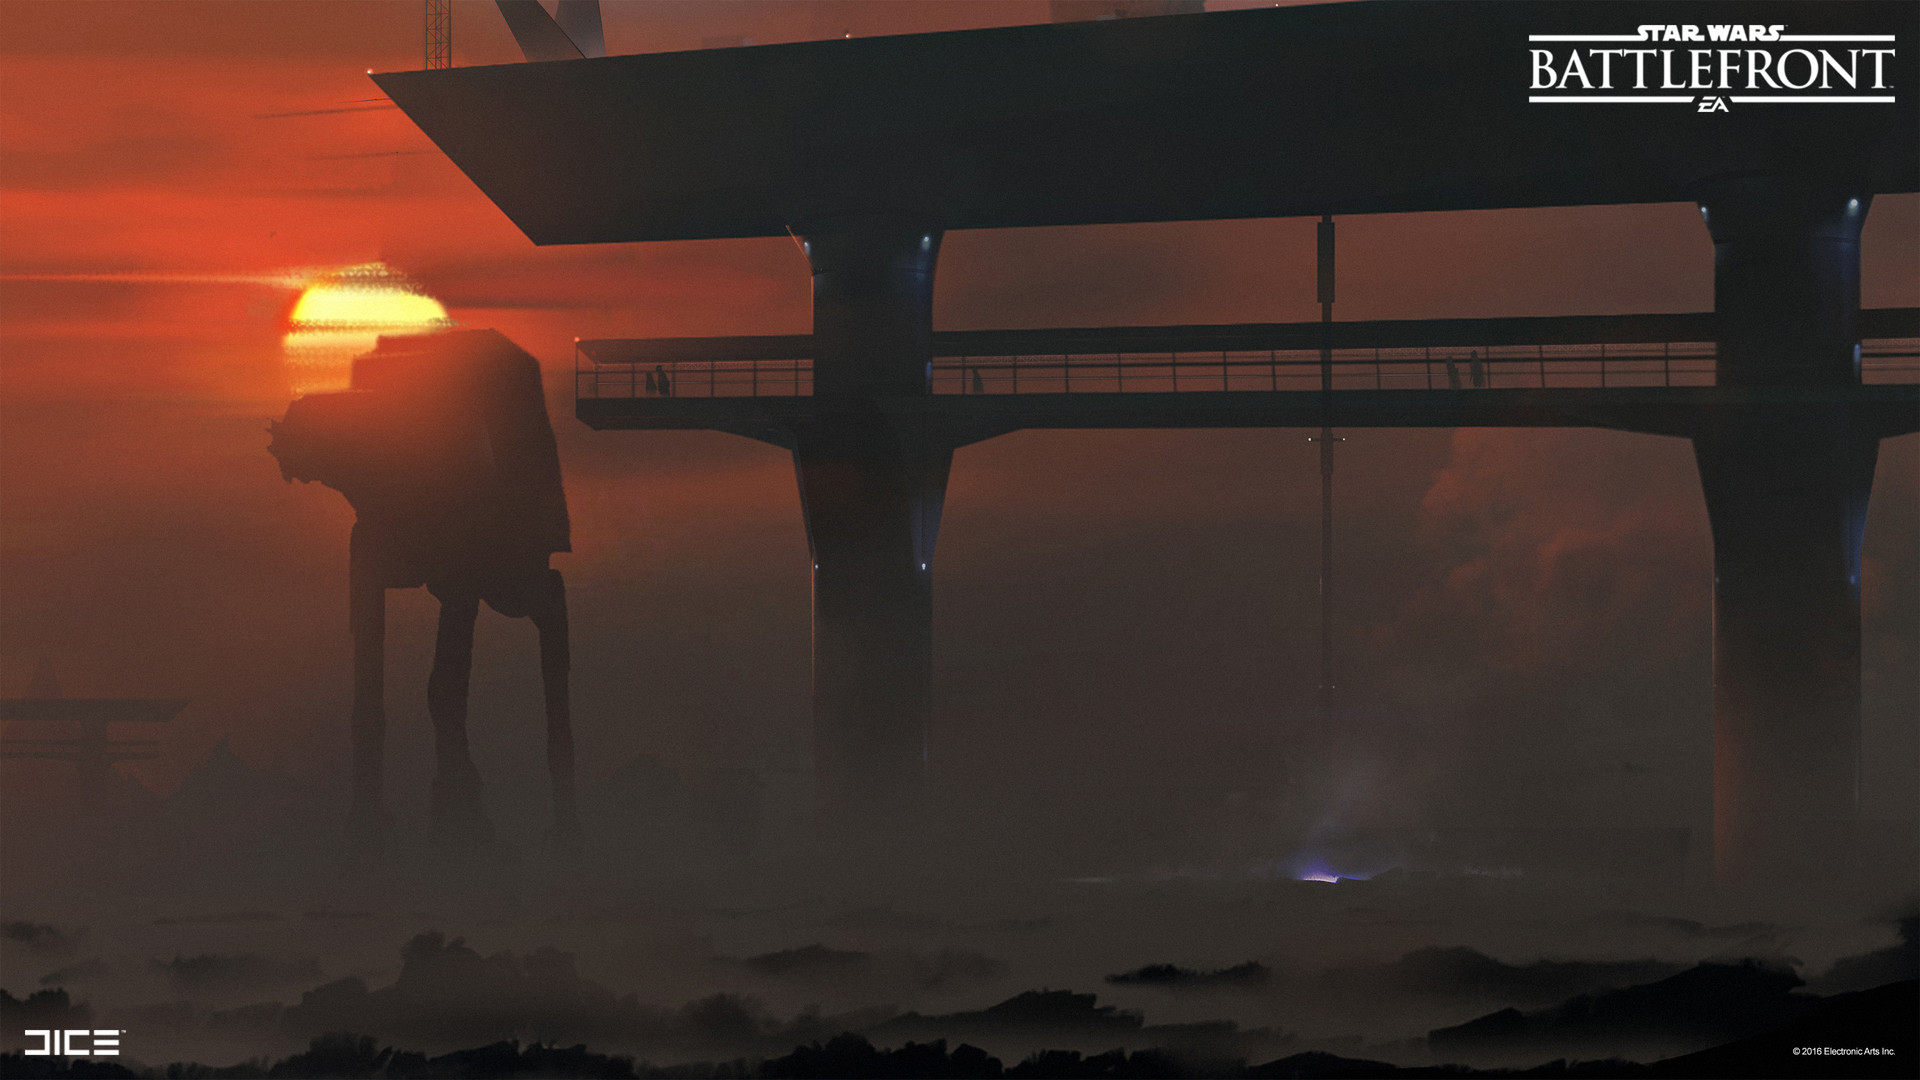 Star Wars Battlefront Concept Art